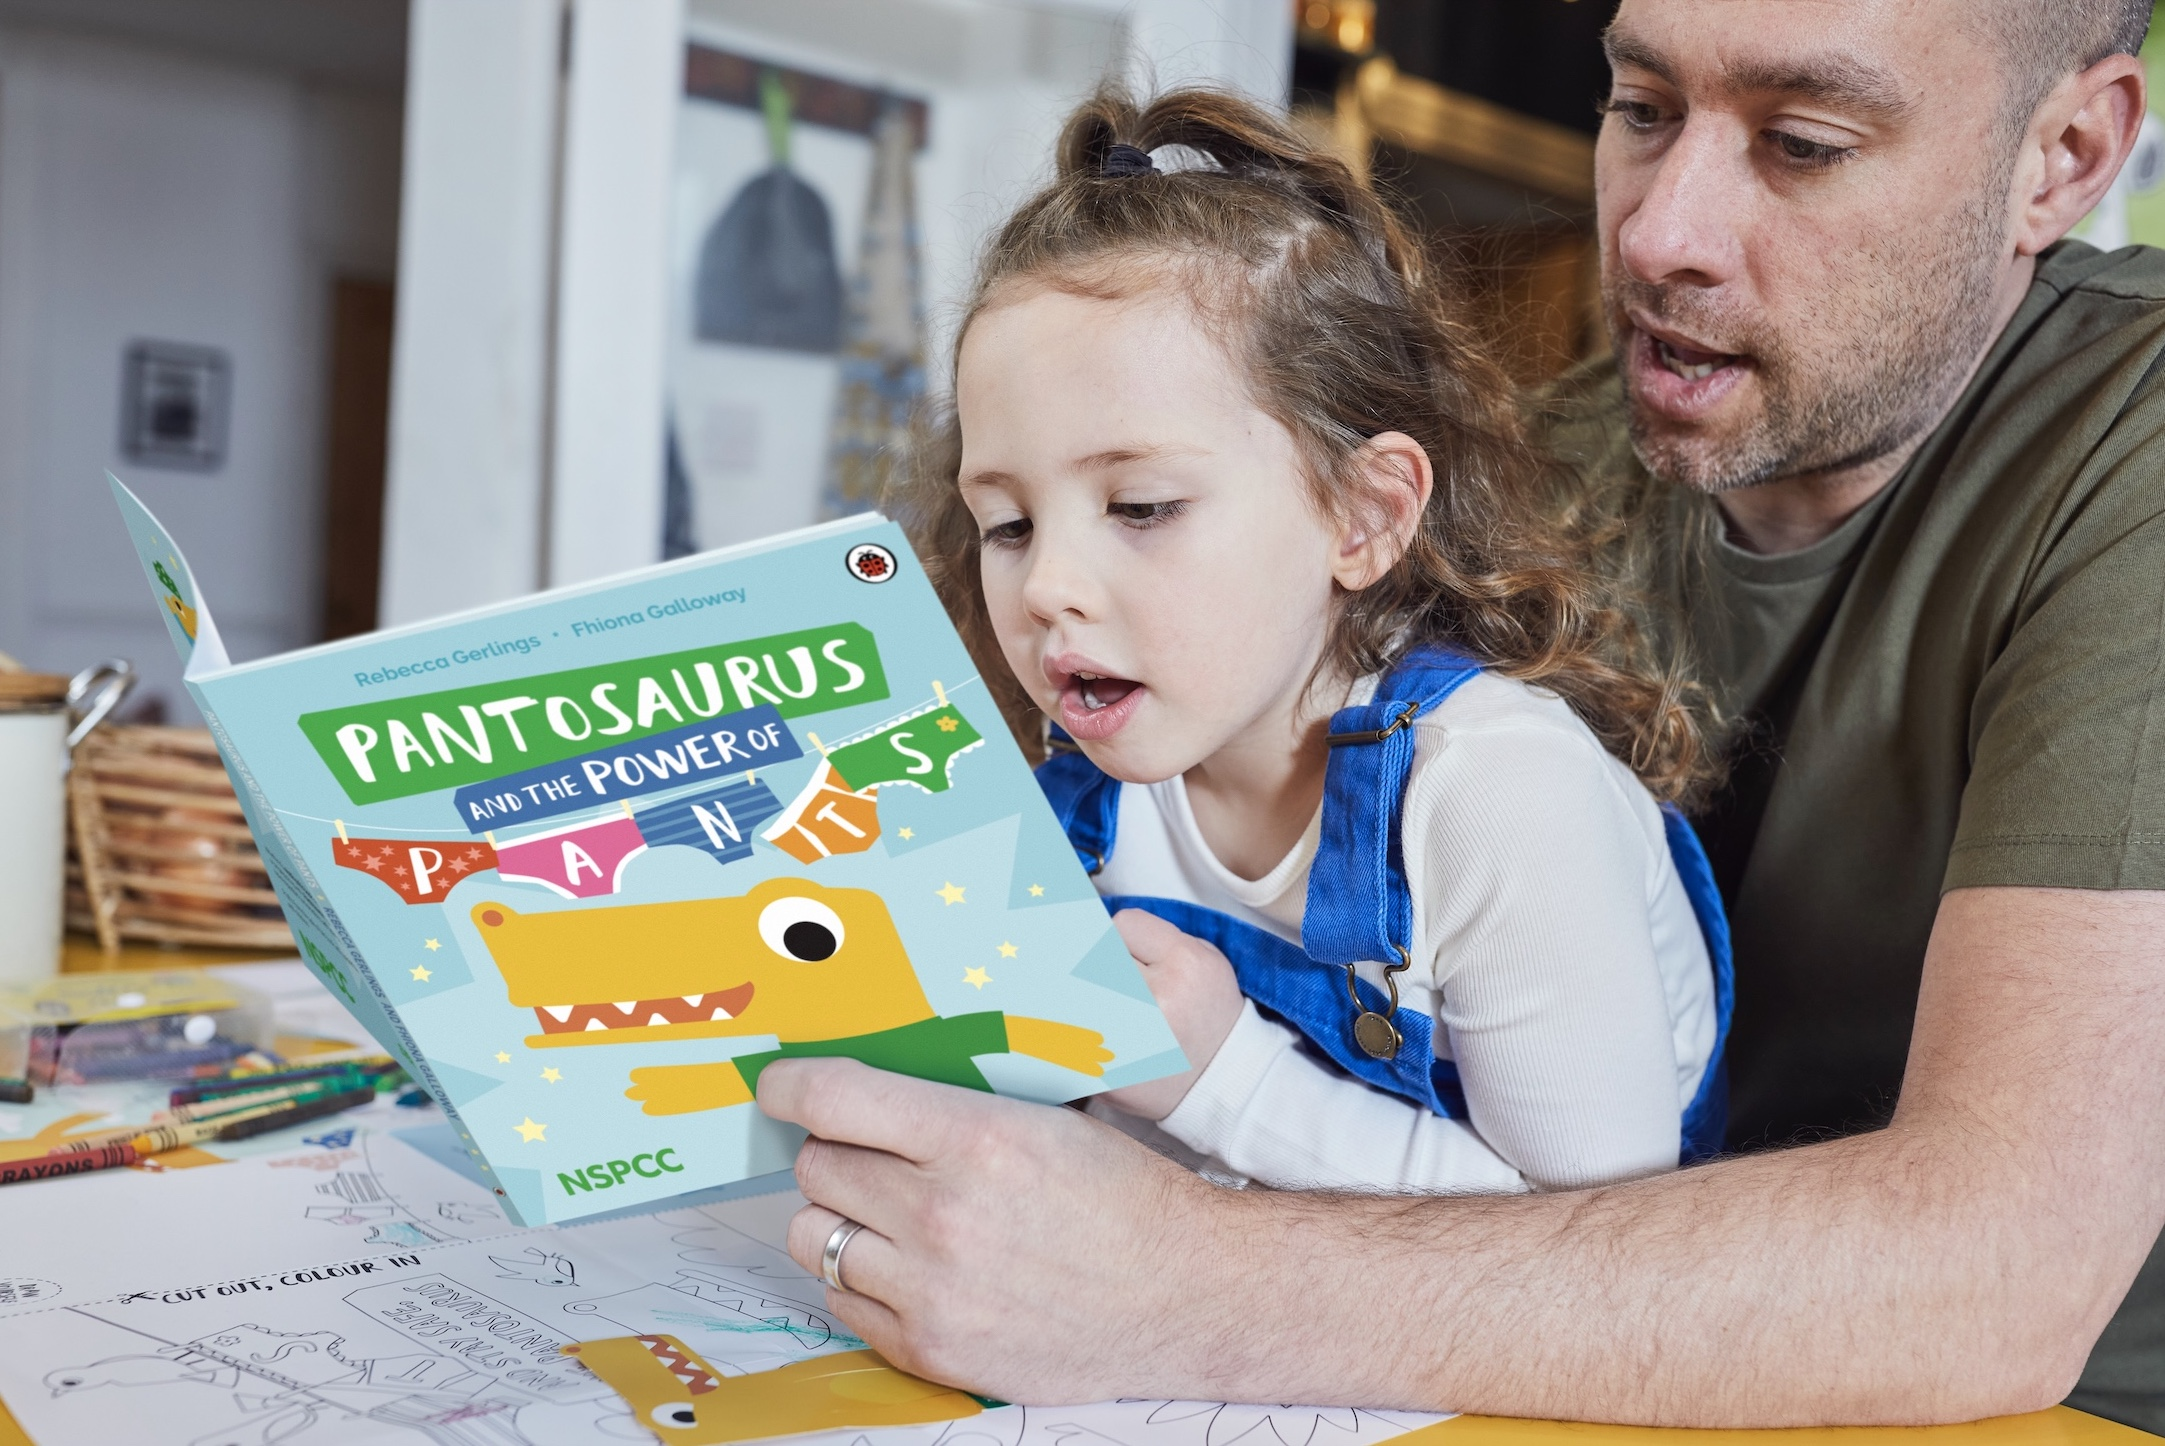 The NSPCC's Pantosaurus and the POWER of PANTS